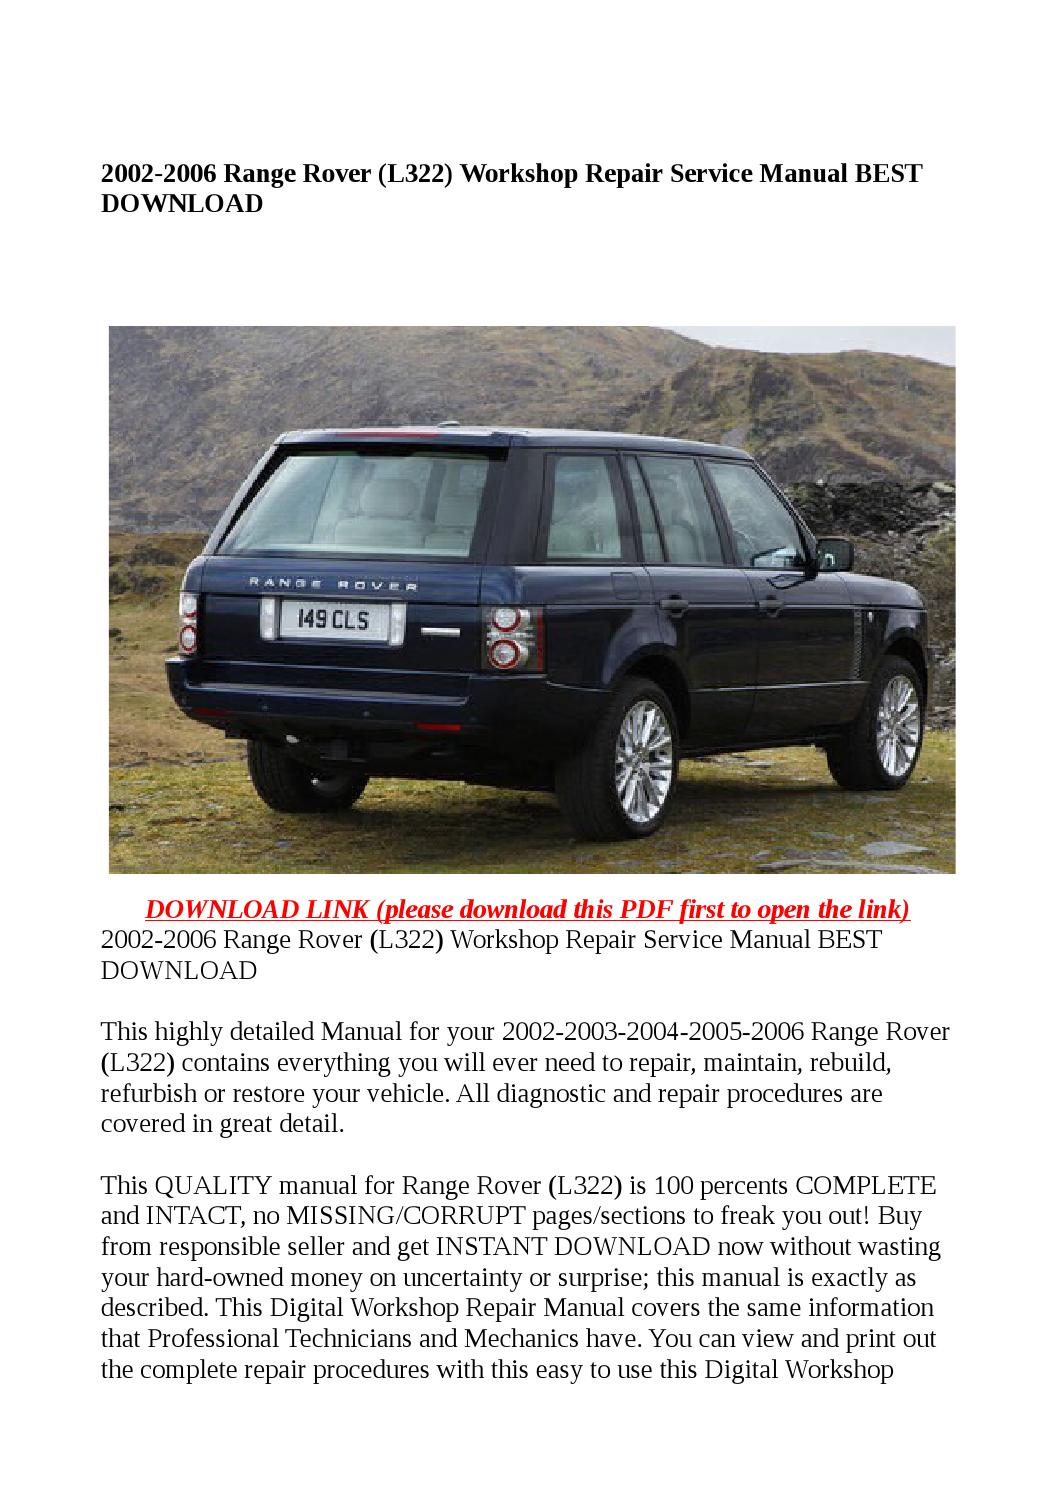 2002 2006 range rover (l322) workshop repair service manual best download  by Greace Clark - issuu